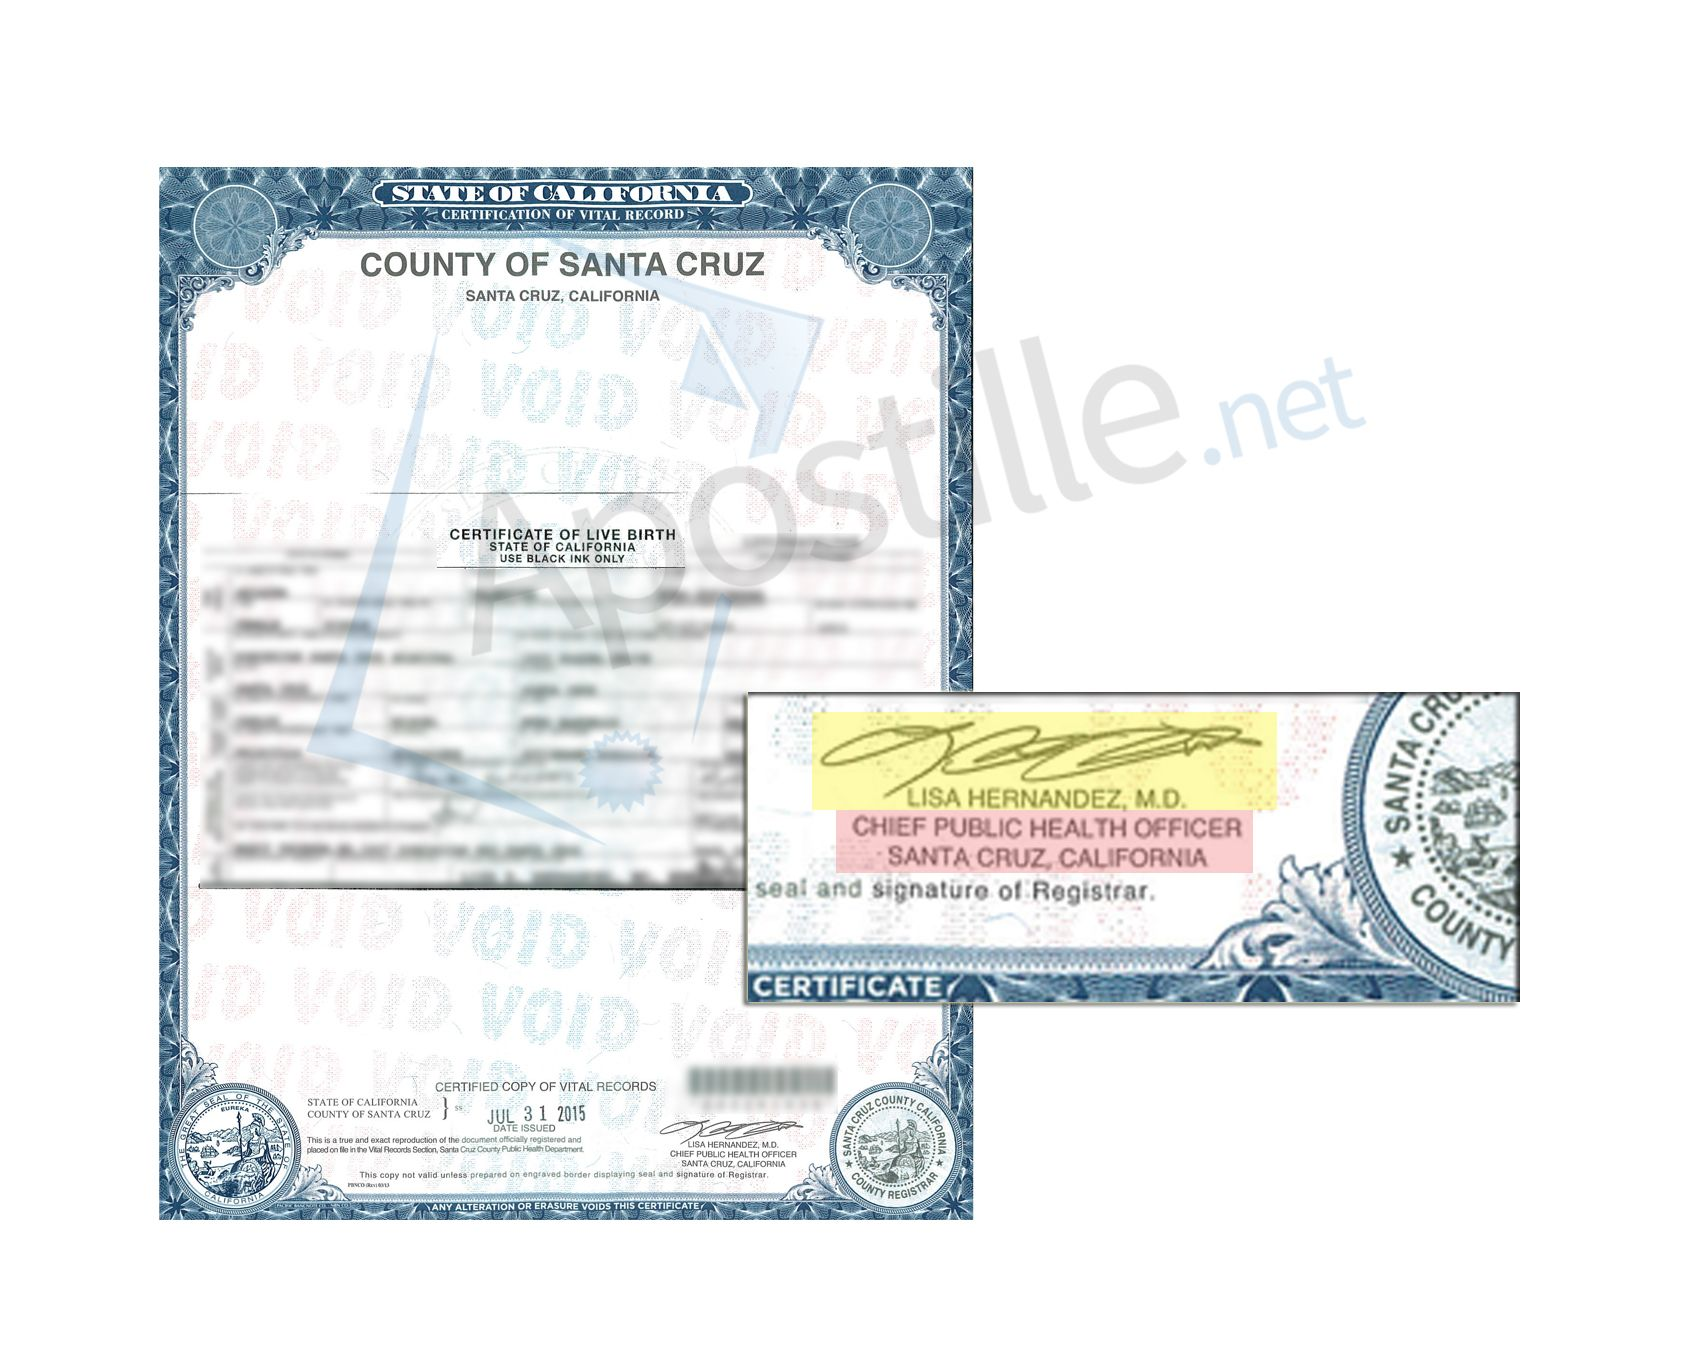 County of santa cruz certificate of birth signed by lisa hernandez county of santa cruz certificate of birth signed by lisa hernandez chief public health officer aiddatafo Choice Image